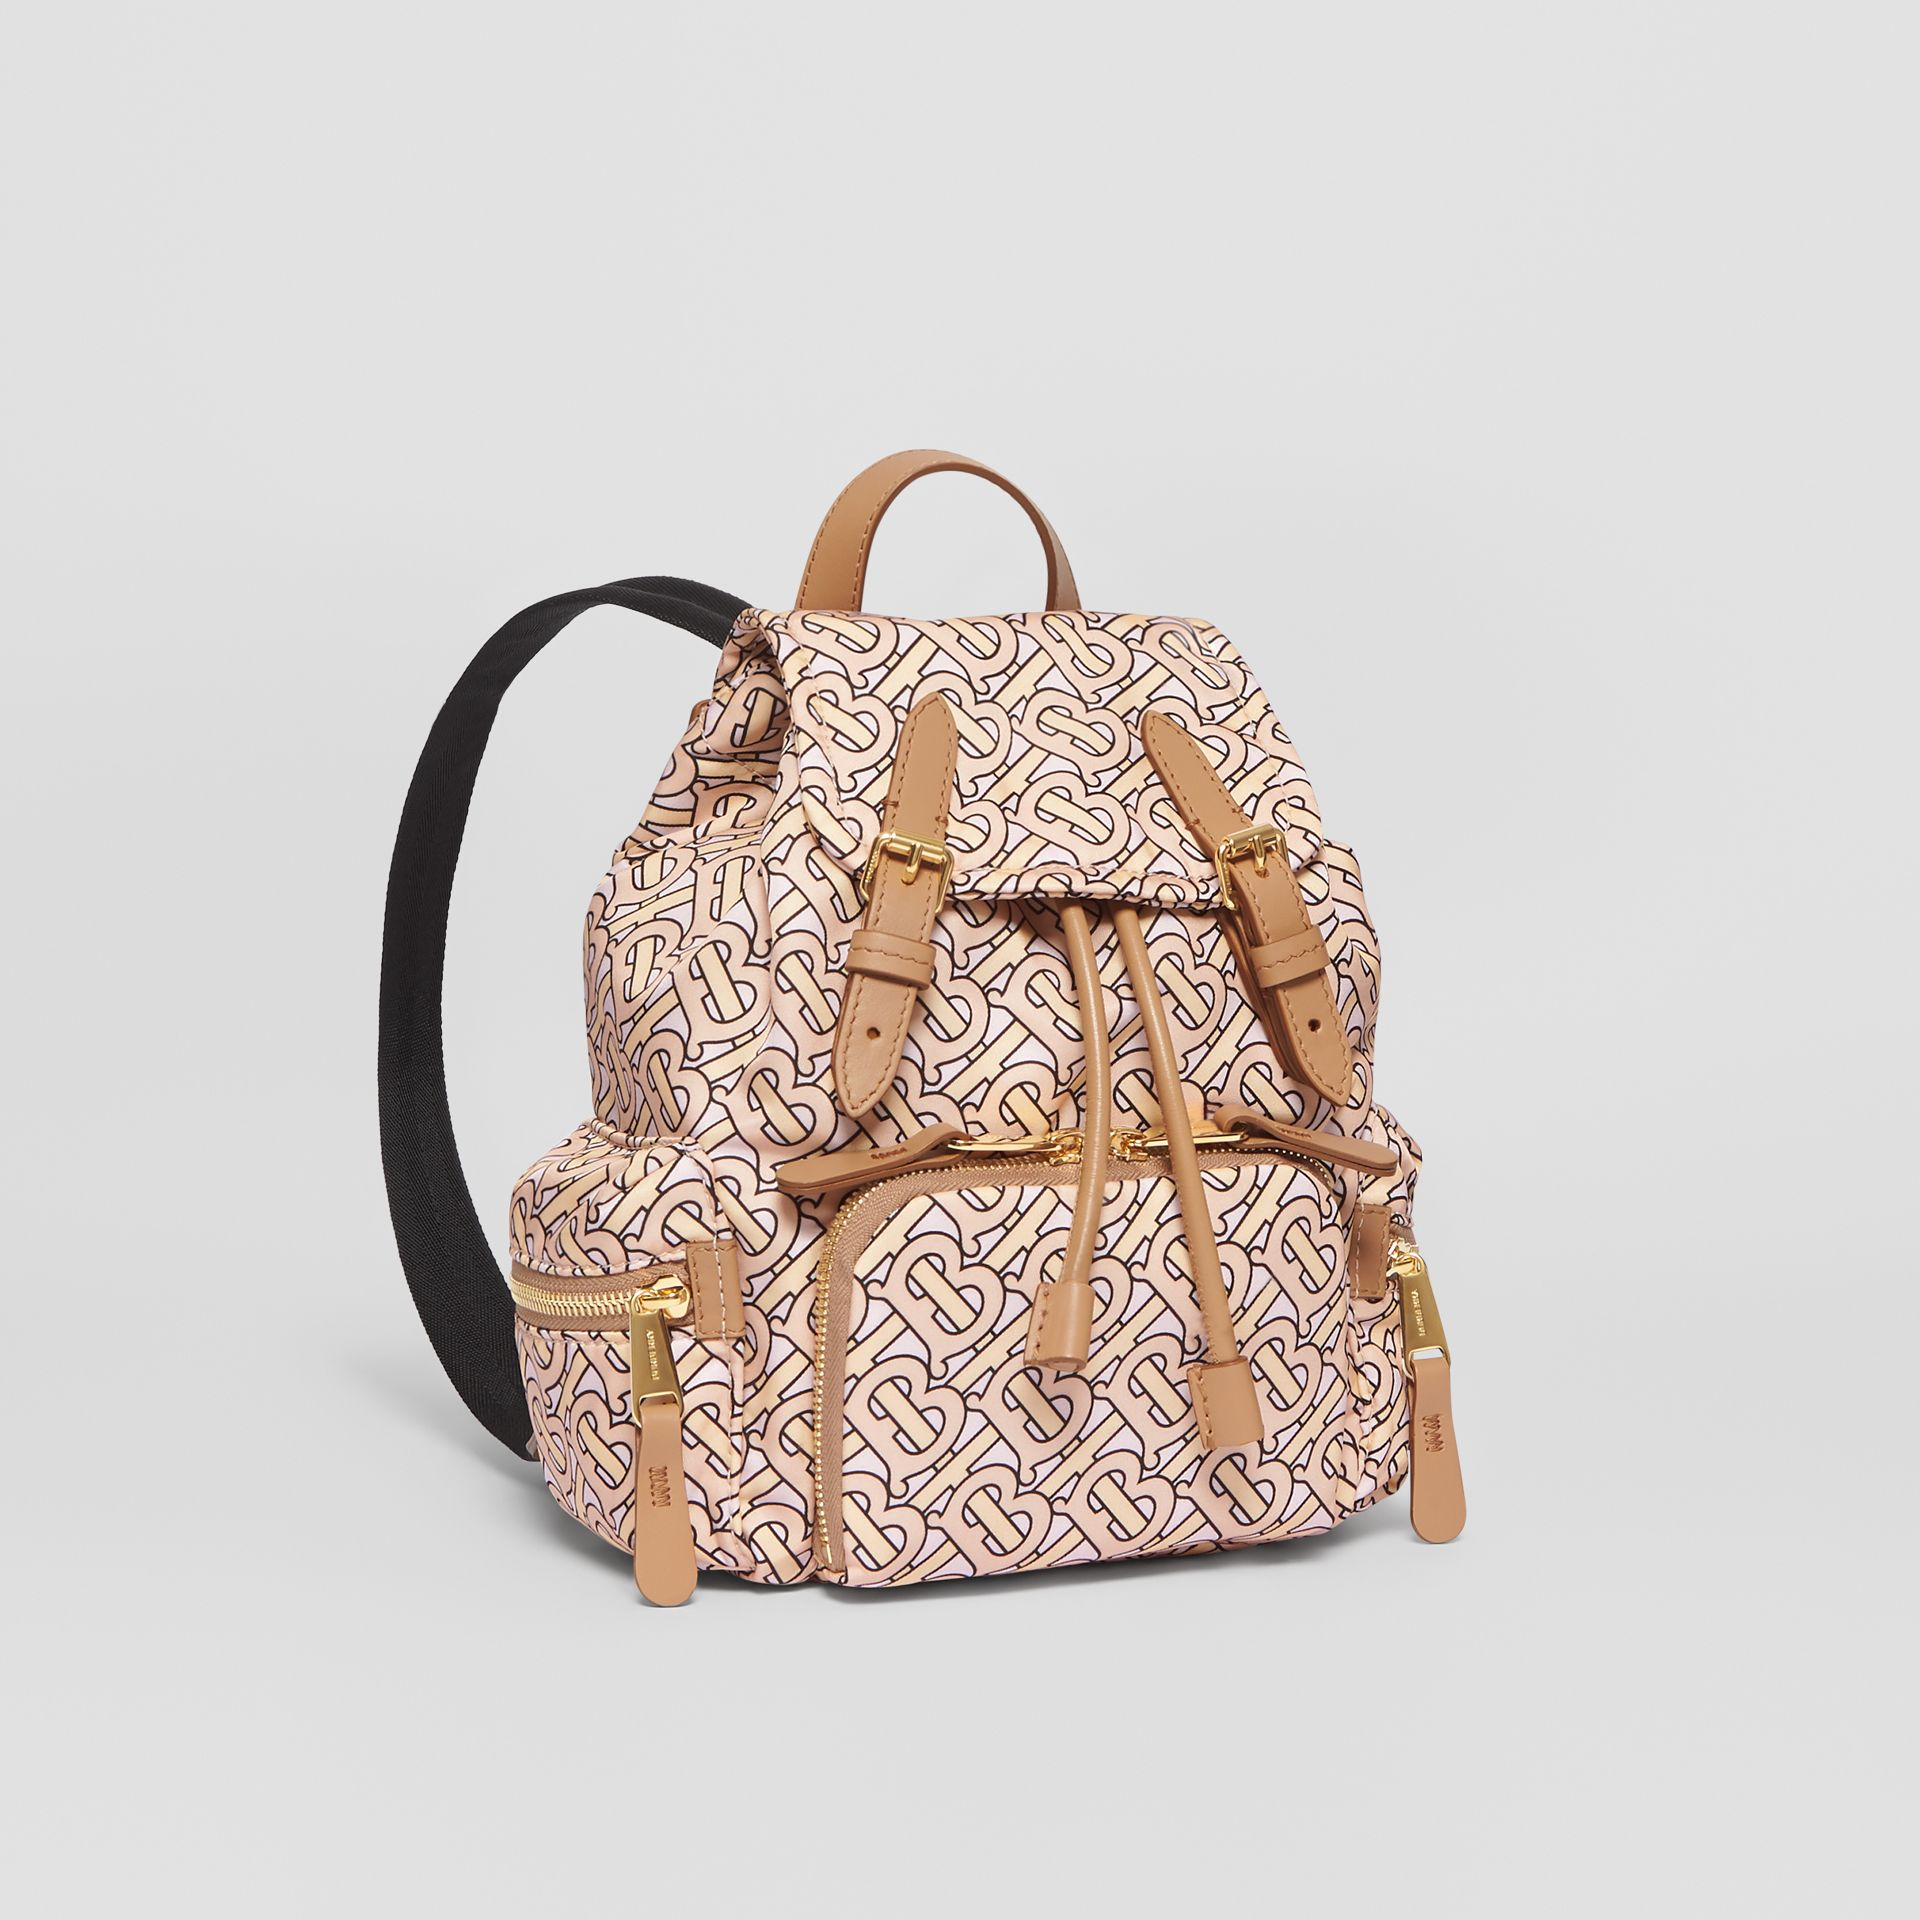 Petit sac The Rucksack en nylon Monogram (Blush) - Femme | Burberry Canada - photo de la galerie 6